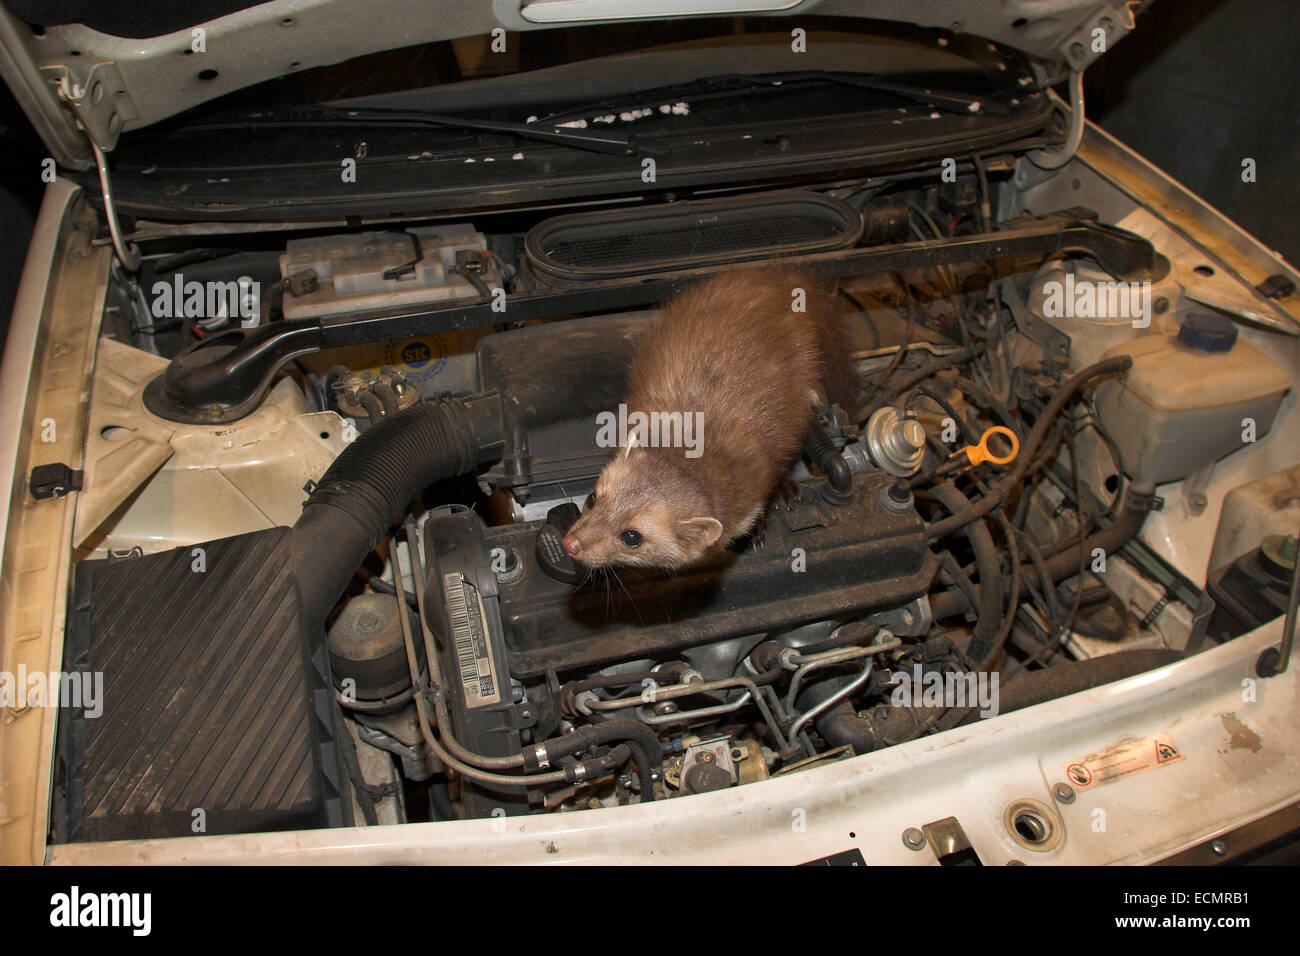 beech marten stone marten car burglar car thief steinmarder stock photo 76674725 alamy. Black Bedroom Furniture Sets. Home Design Ideas